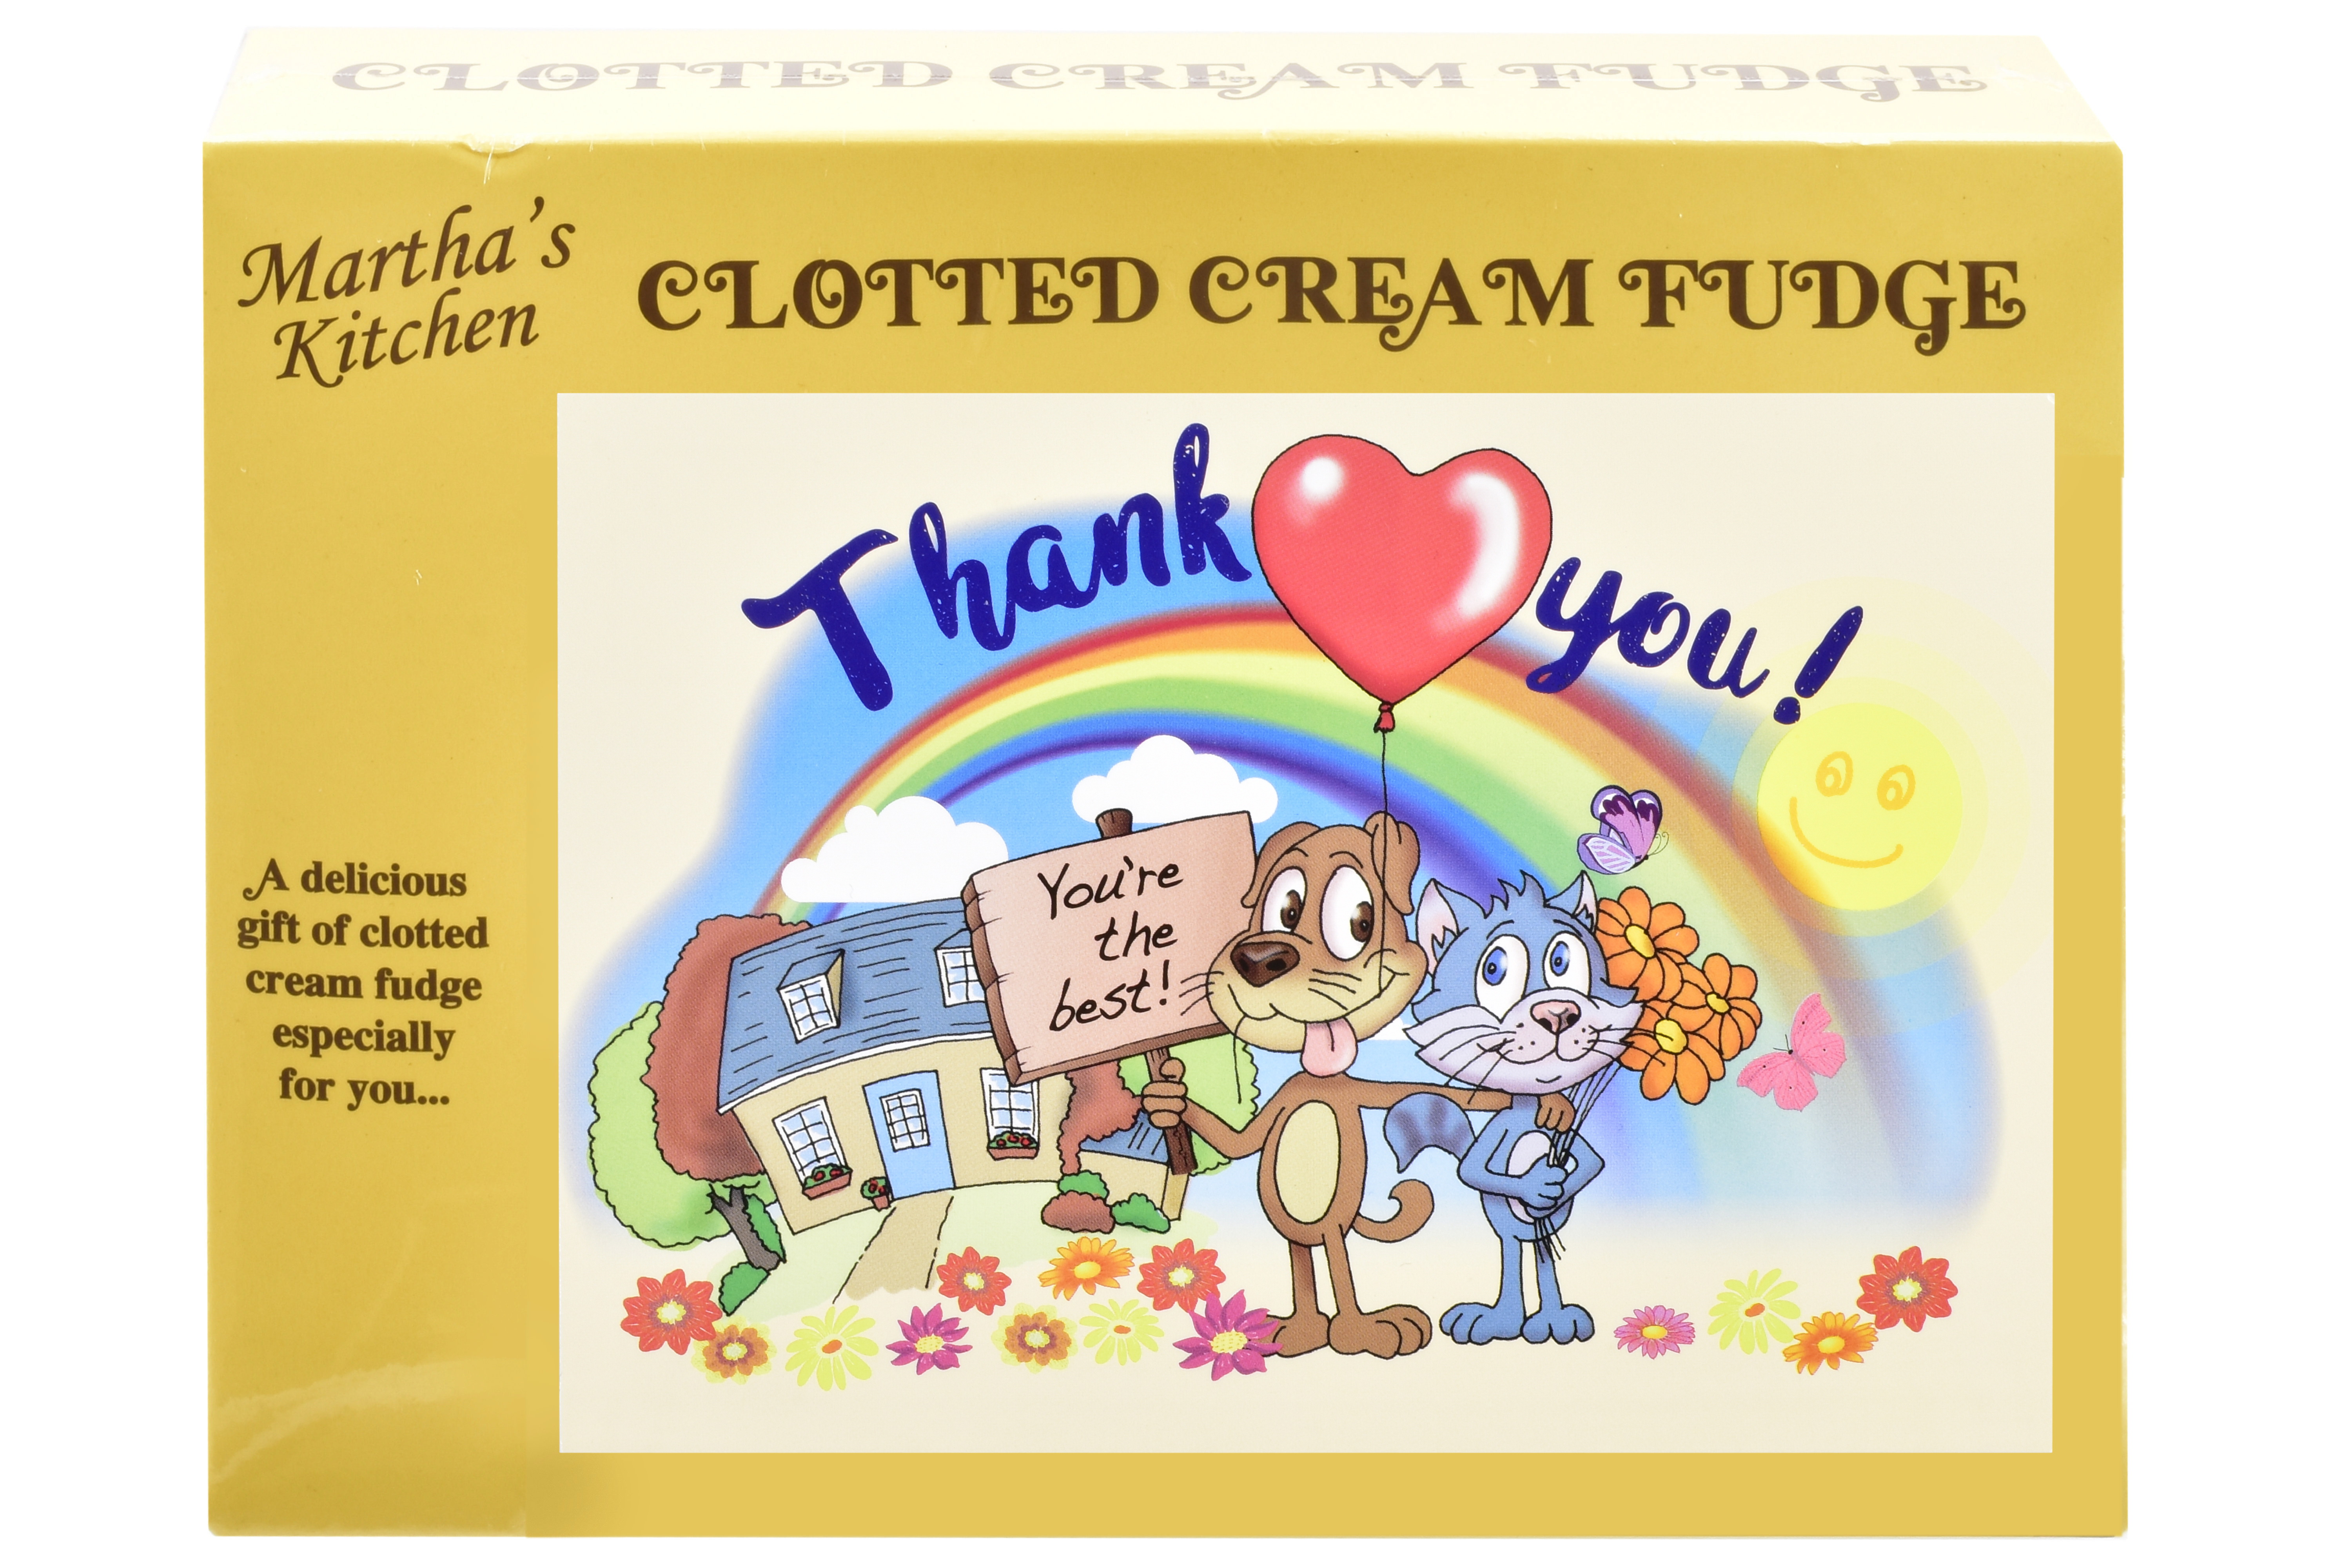 100g Clotted Cream Fudge 'Thank You' Postcard Box